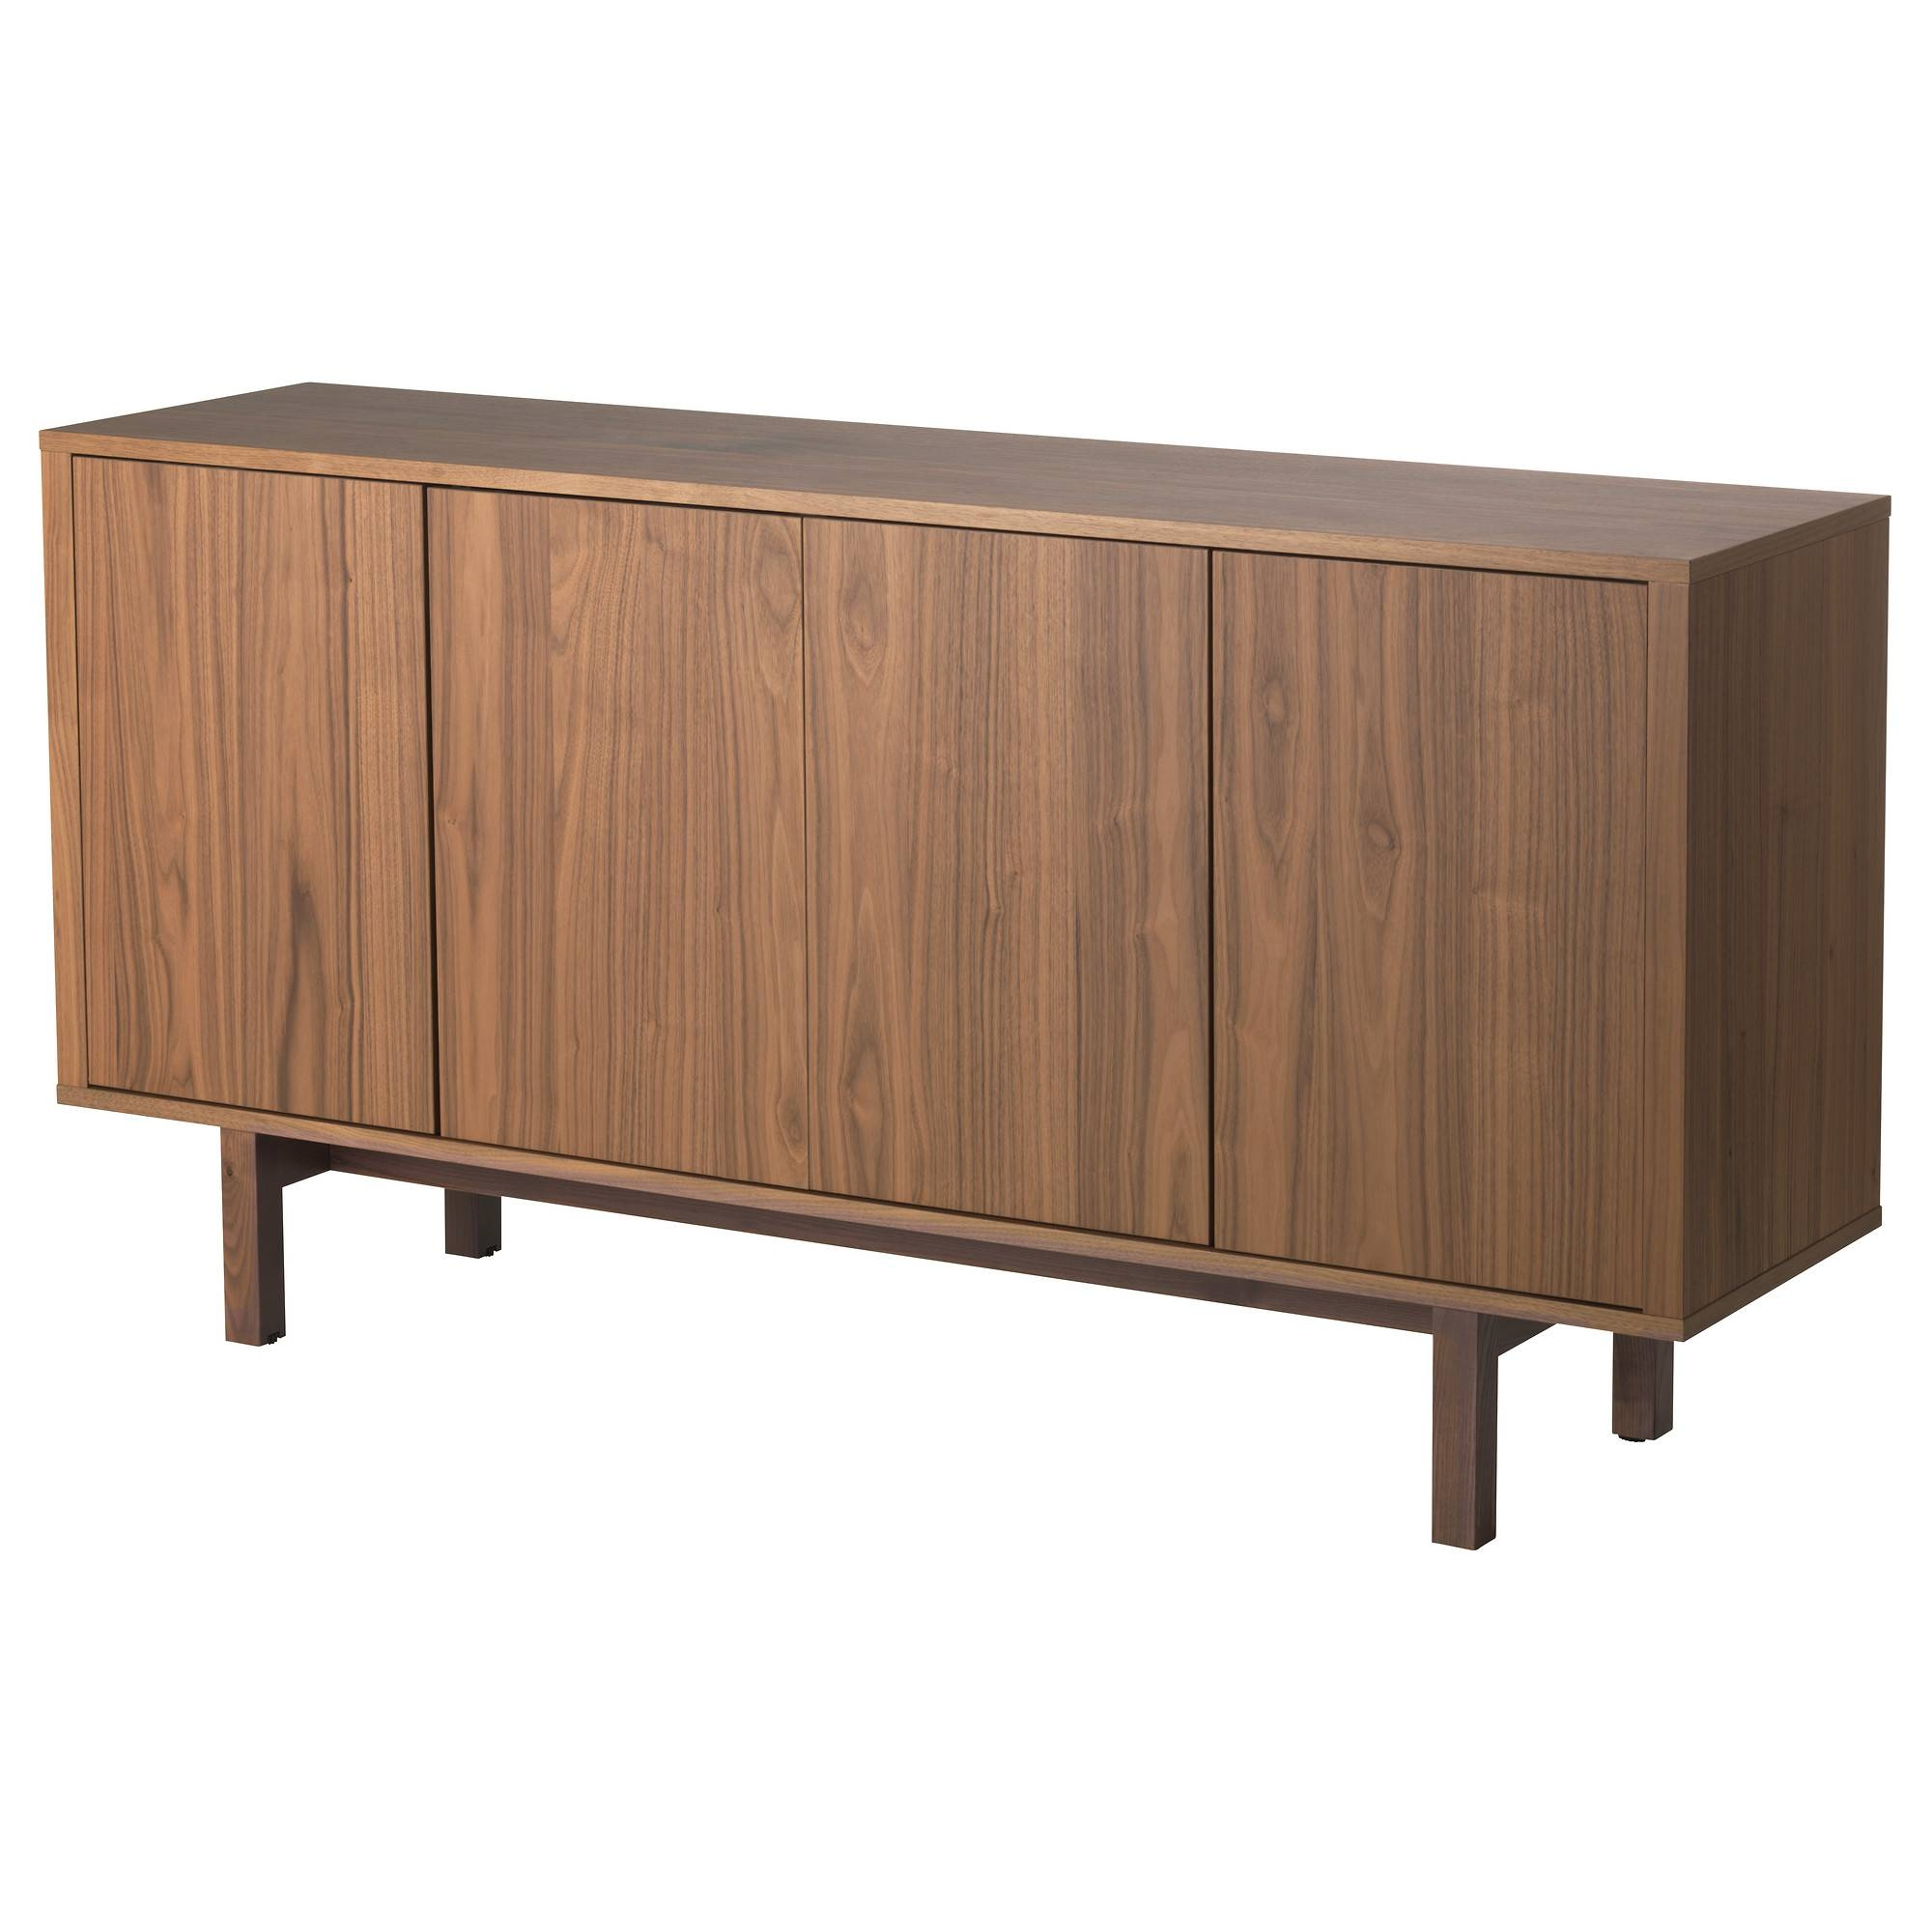 Buffet Tables & Sideboards – Ikea Pertaining To Most Up To Date Sideboard Buffet Furniture (#2 of 15)